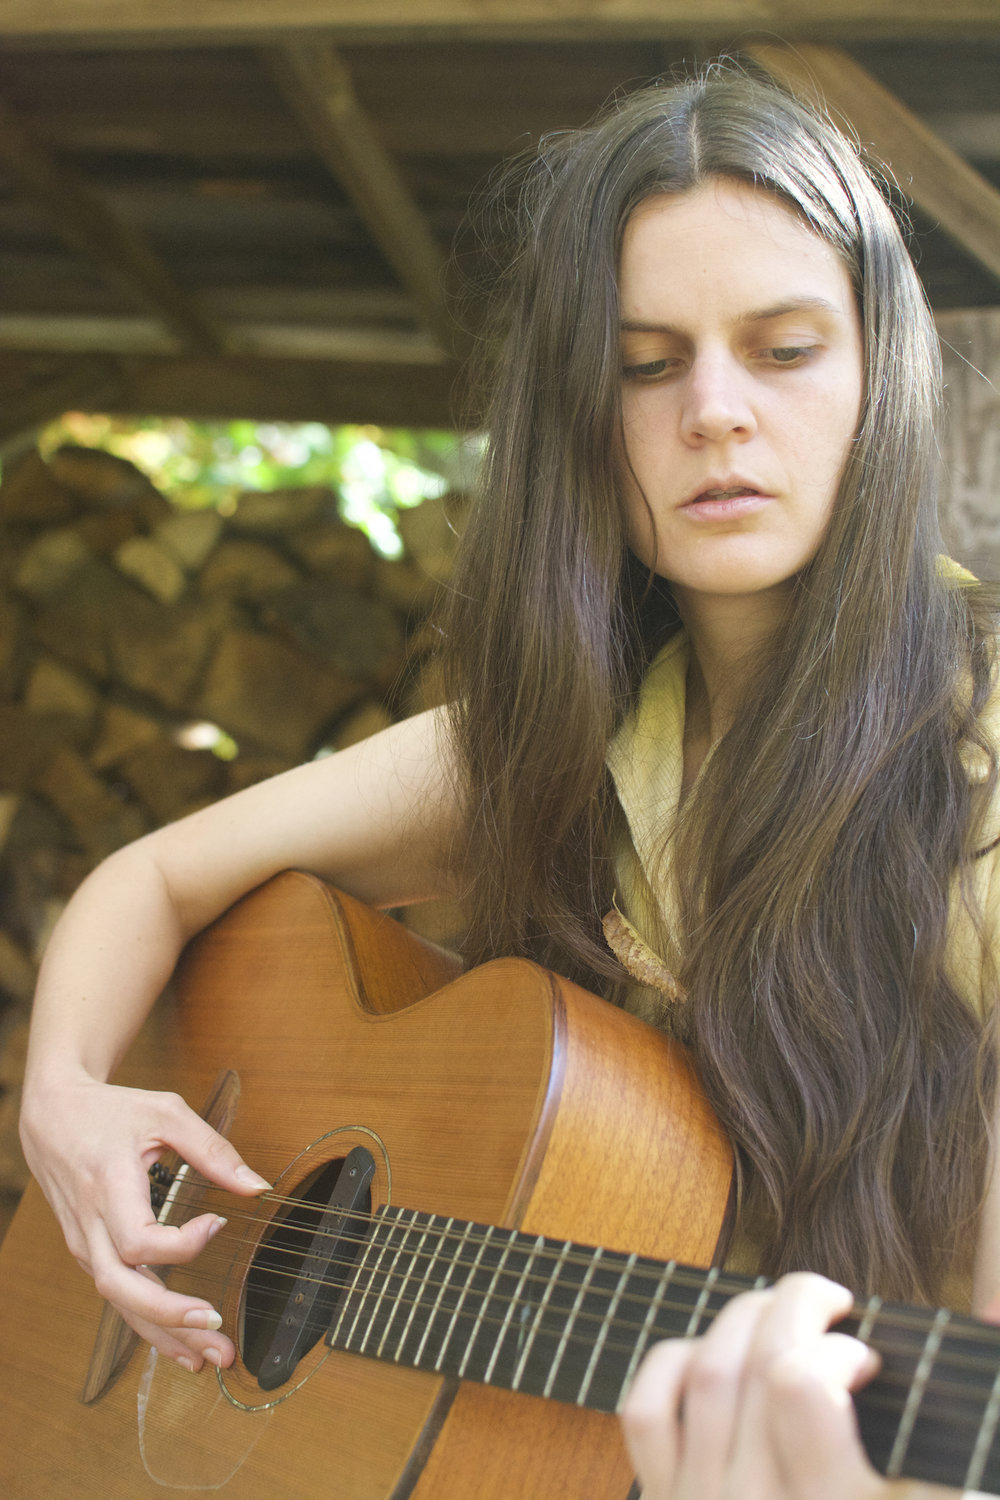 """Sarah Louise - Louise, an avid naturalist and forager, draws from the guidance that the natural world provides. Whereas portrayals of women in nature are often demeaning and powerless, a folk waif, Louise uses songs such as """"Pipevine Swallowtails"""" to reframe them more powerfully. By reframing traditional music styles and lyricism with a feminist stance, Deeper Woods blends the spiritual with the cerebral. Sarah Louise is actively blending natural themes with explorations of complex emotions. The Appalachian valley is the setting for her stories of independence, solitude, and awe. """"Bowman's Root"""" and """"Fire Pink And Milkweed"""" take their names from plants that grow on the edges of meadows, reflecting the album's central theme of liminality. These liminal spaces and complicated emotions are made ever clearer by Louise's nuanced performances and arrangements, with subtle melodic flares and delicate, sometimes dramatic, shifts in atmosphere."""